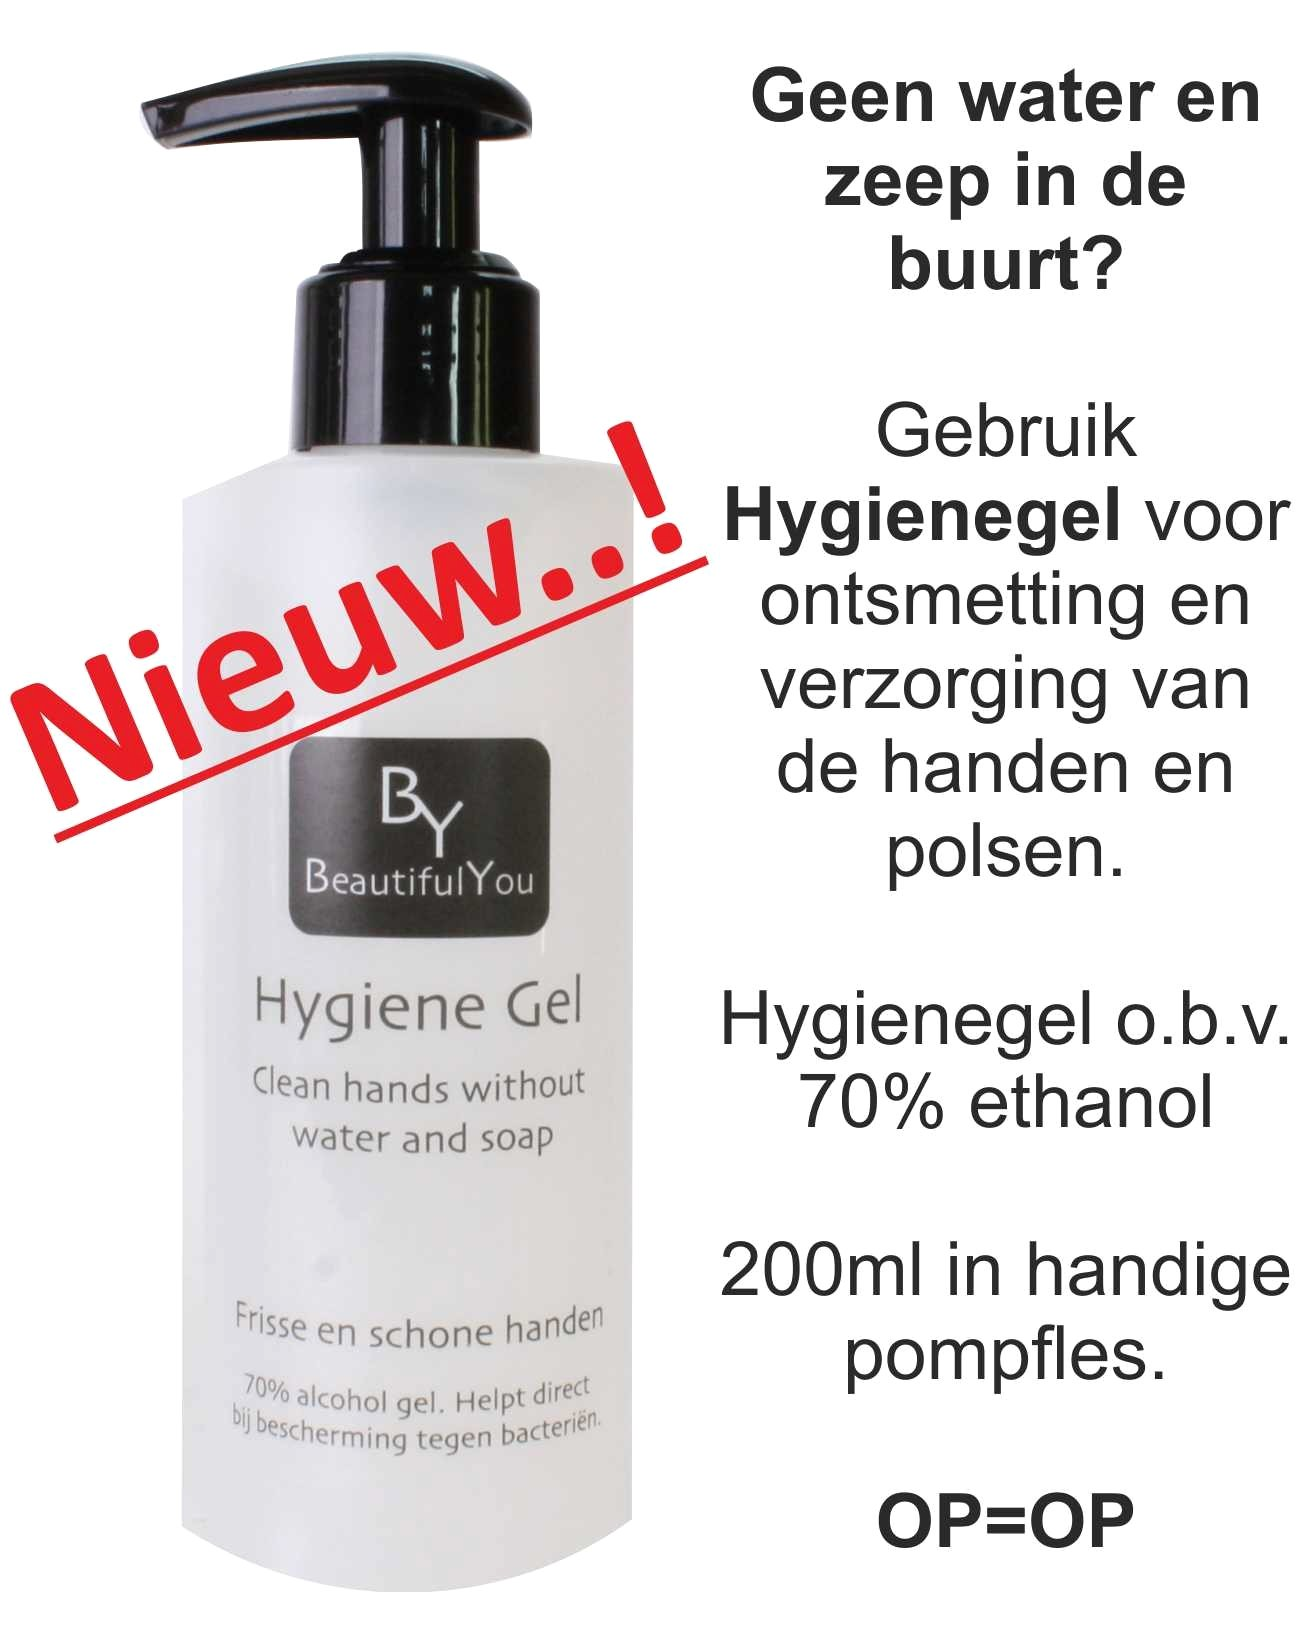 By HygieneGel 200ml